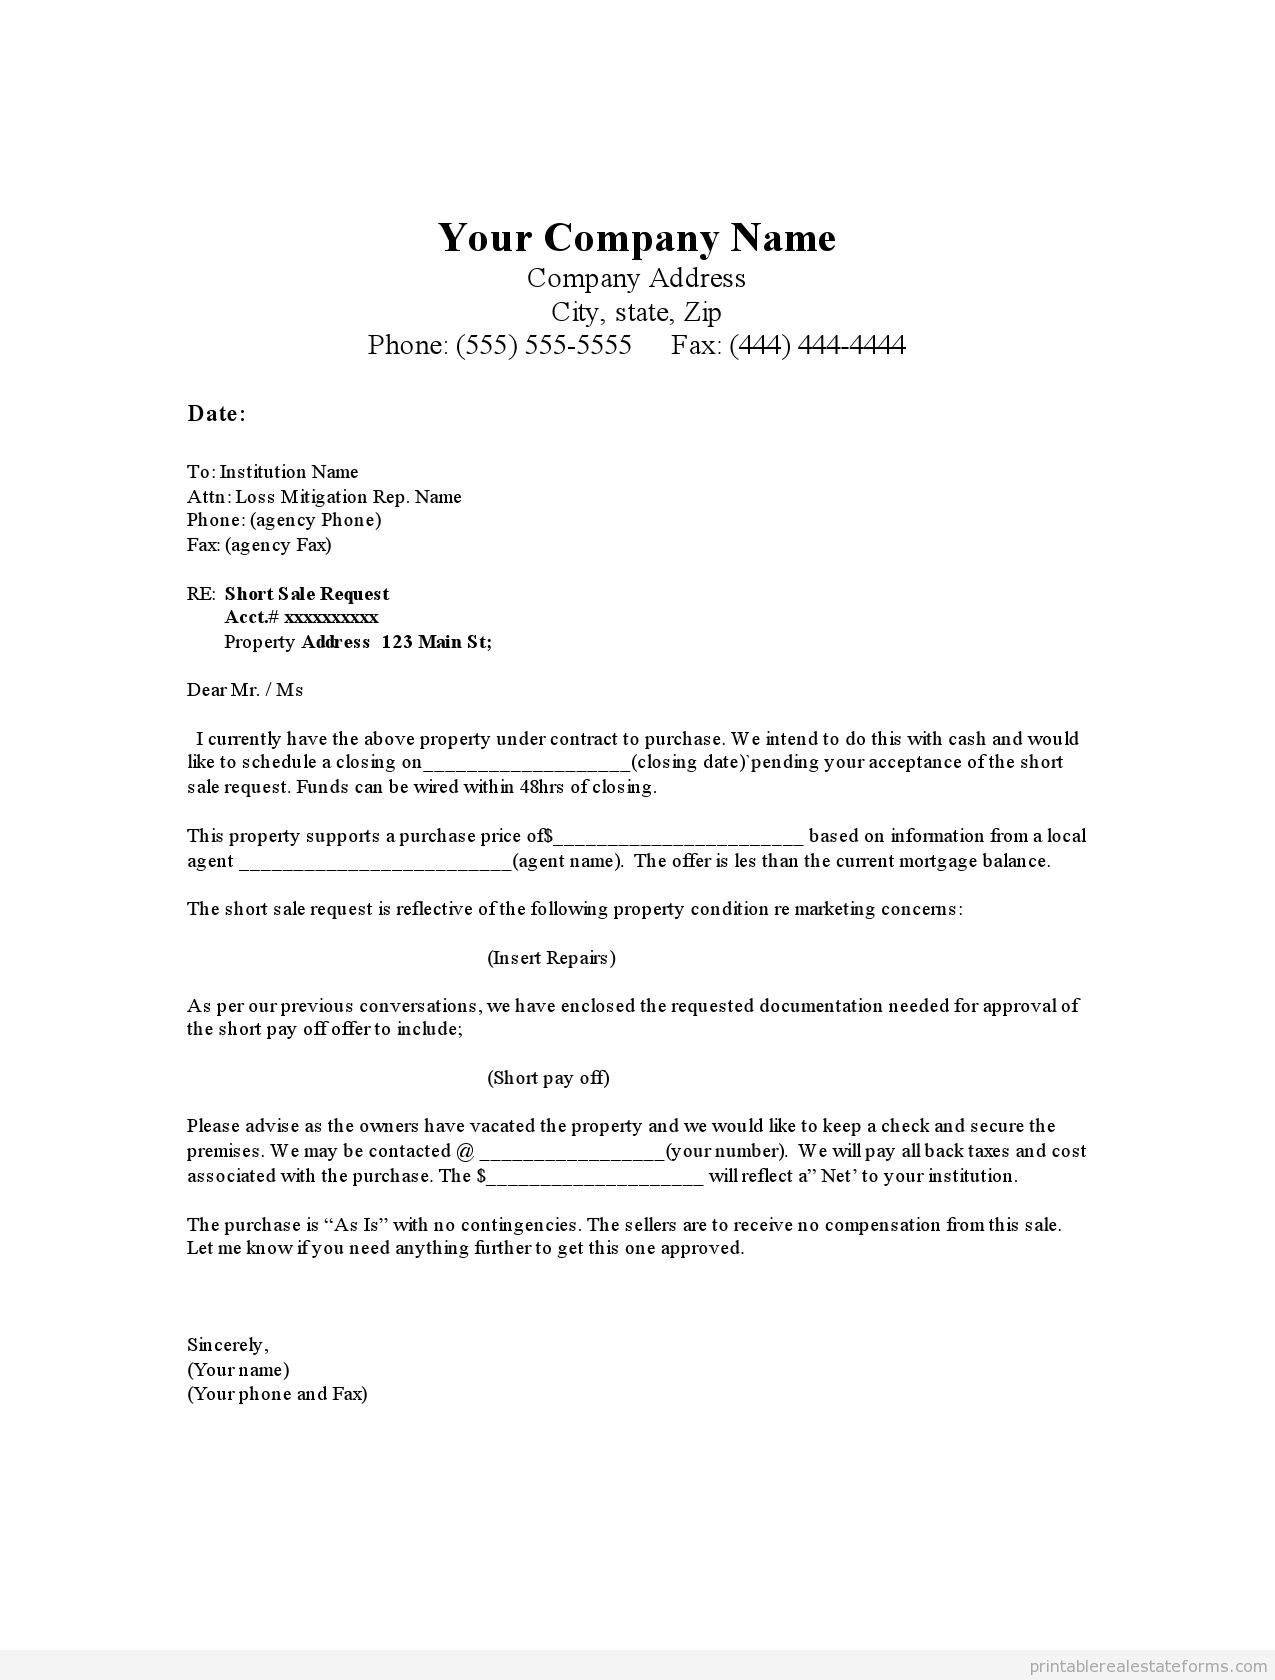 House Offer Letter Template - 24 Elegant Sample Agreement Letter for Adoption